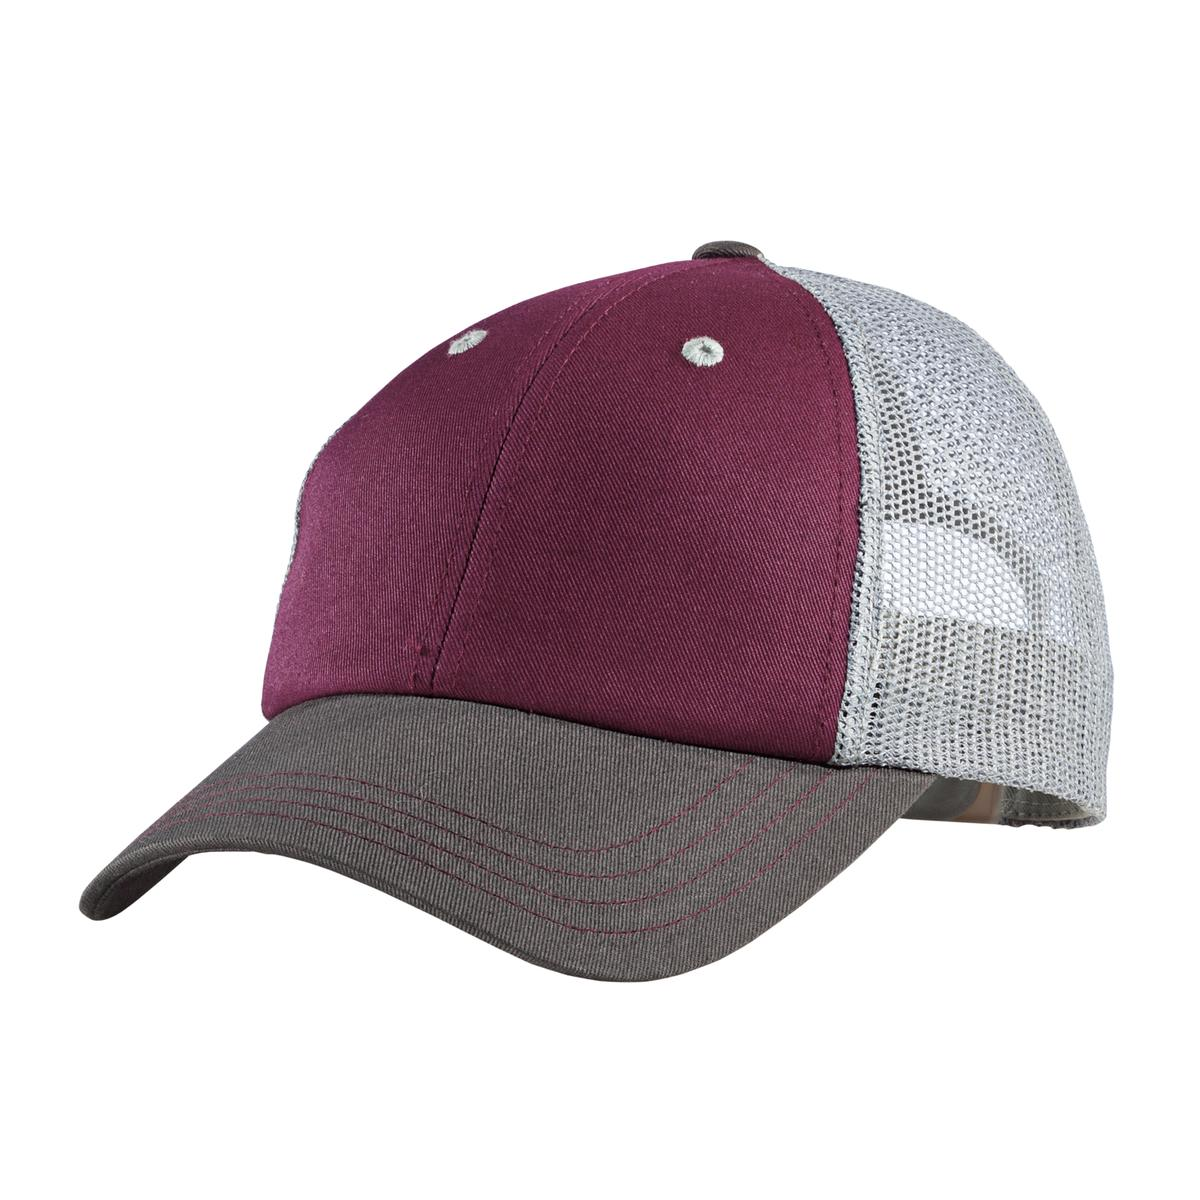 District ®  Tri-Tone Mesh Back Cap DT616 - Maroon/Charcoal/Grey